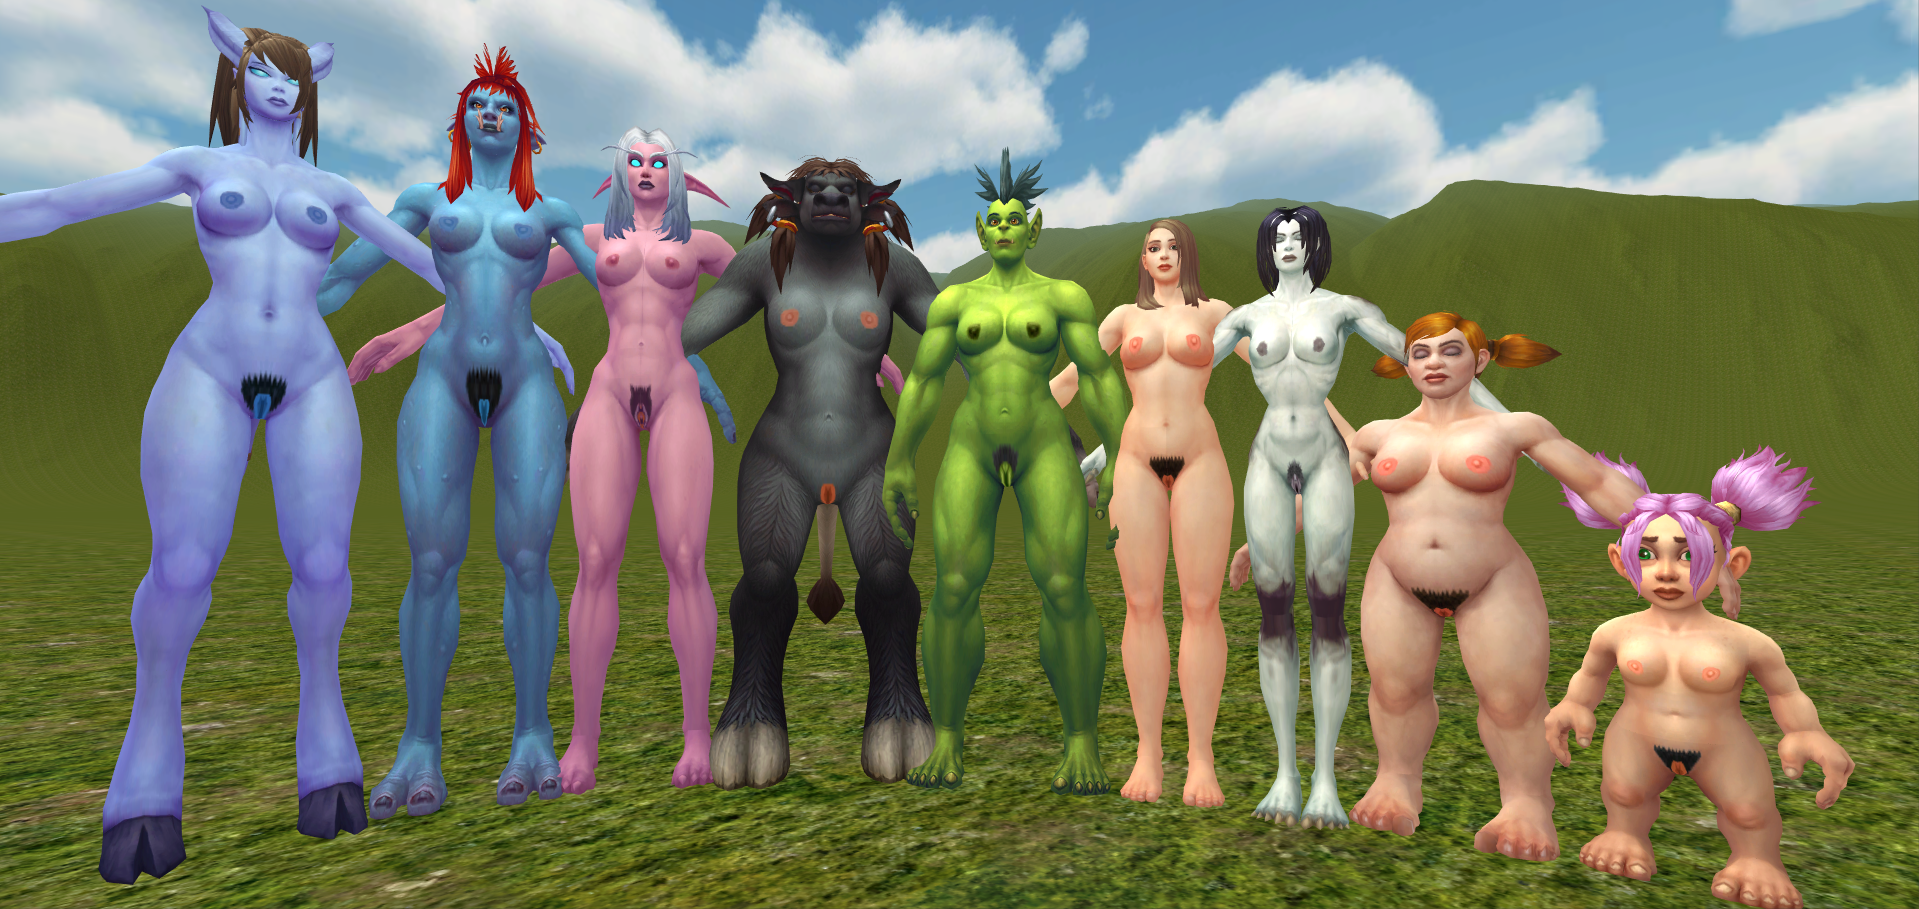 Nude draenei mods cartoon girls